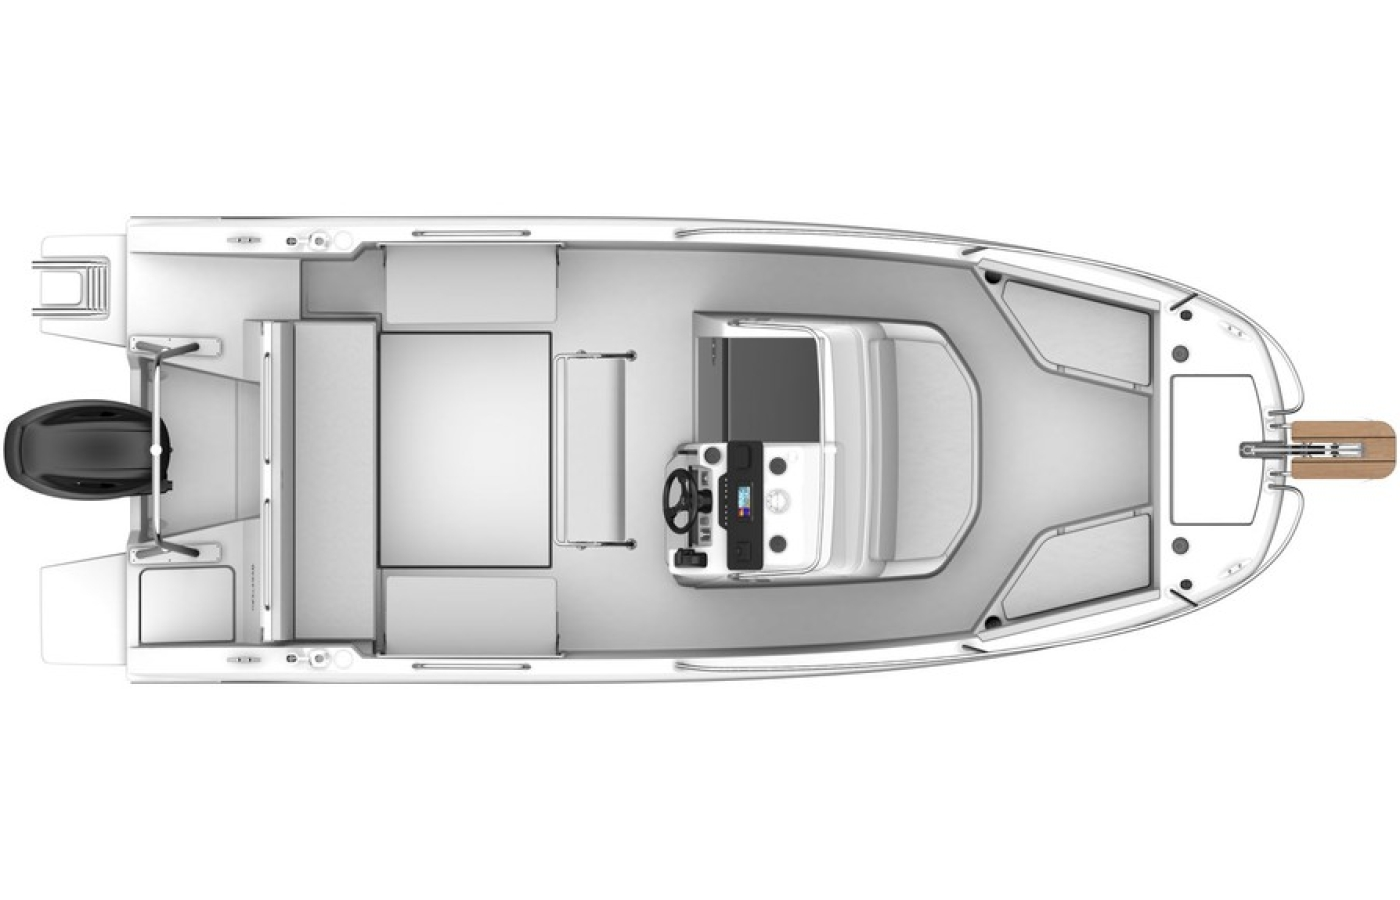 A view of the boat from above